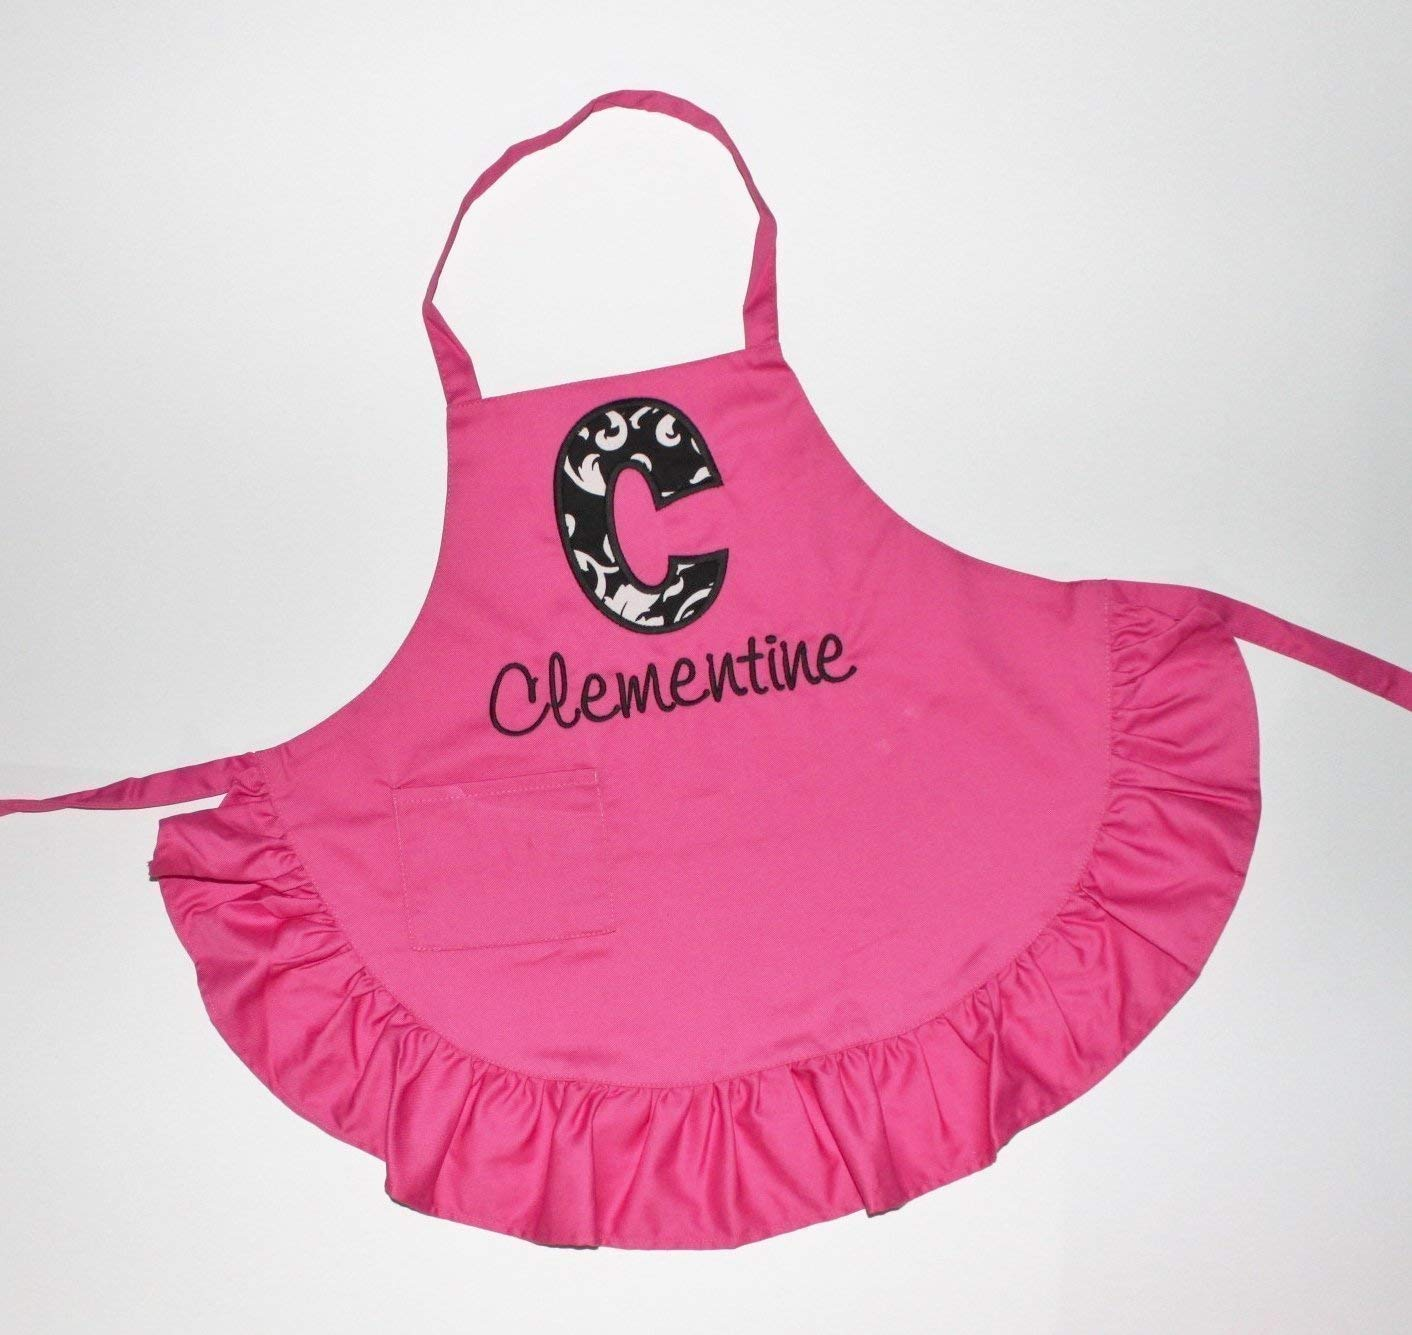 Child Size Hot Pink Ruffled Apron with Name and Initial, Kids Apron, Pink Ruffle Apron